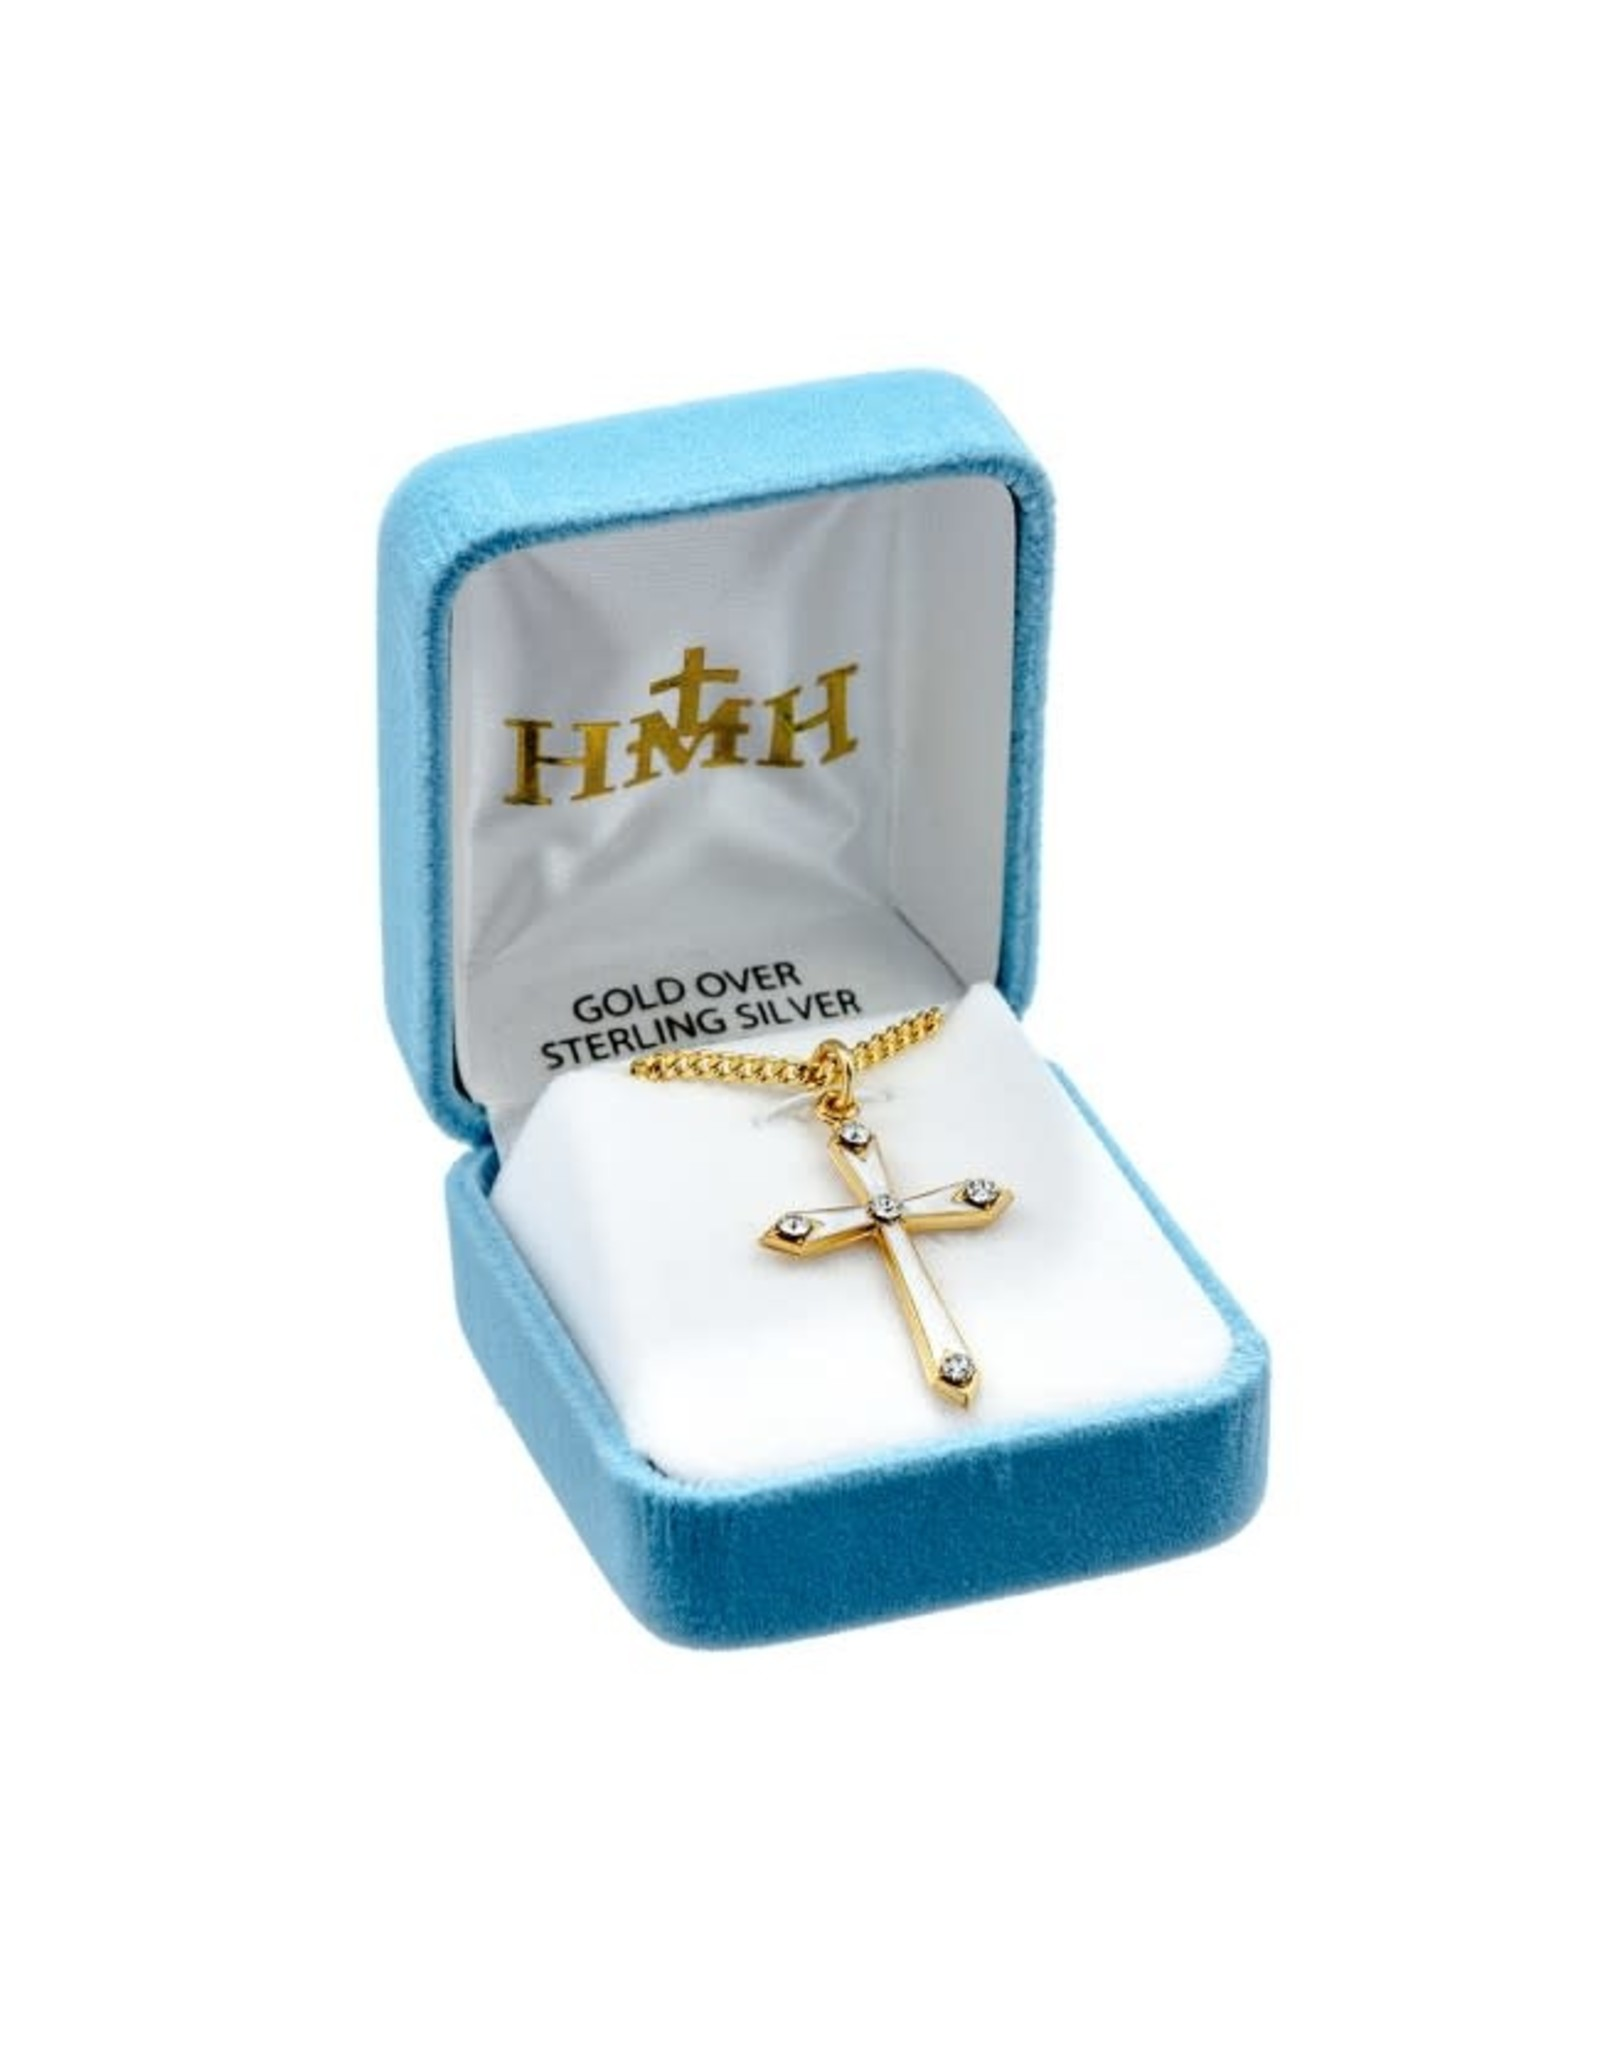 """HMH 16 Karat Gold Over Sterling Silver Mother of Pearl Cross with Stones on 18"""" Chain, Boxed"""